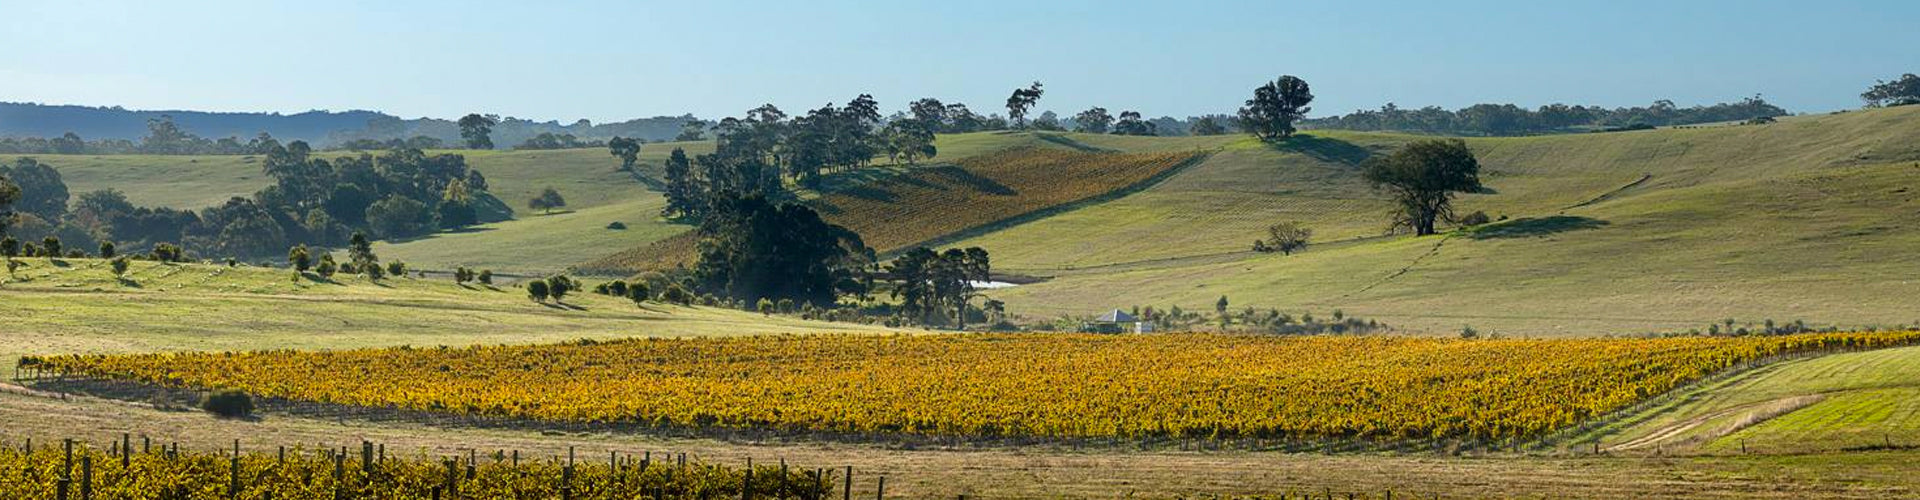 Grosset Vineyards in the Clare Valley, South Australia